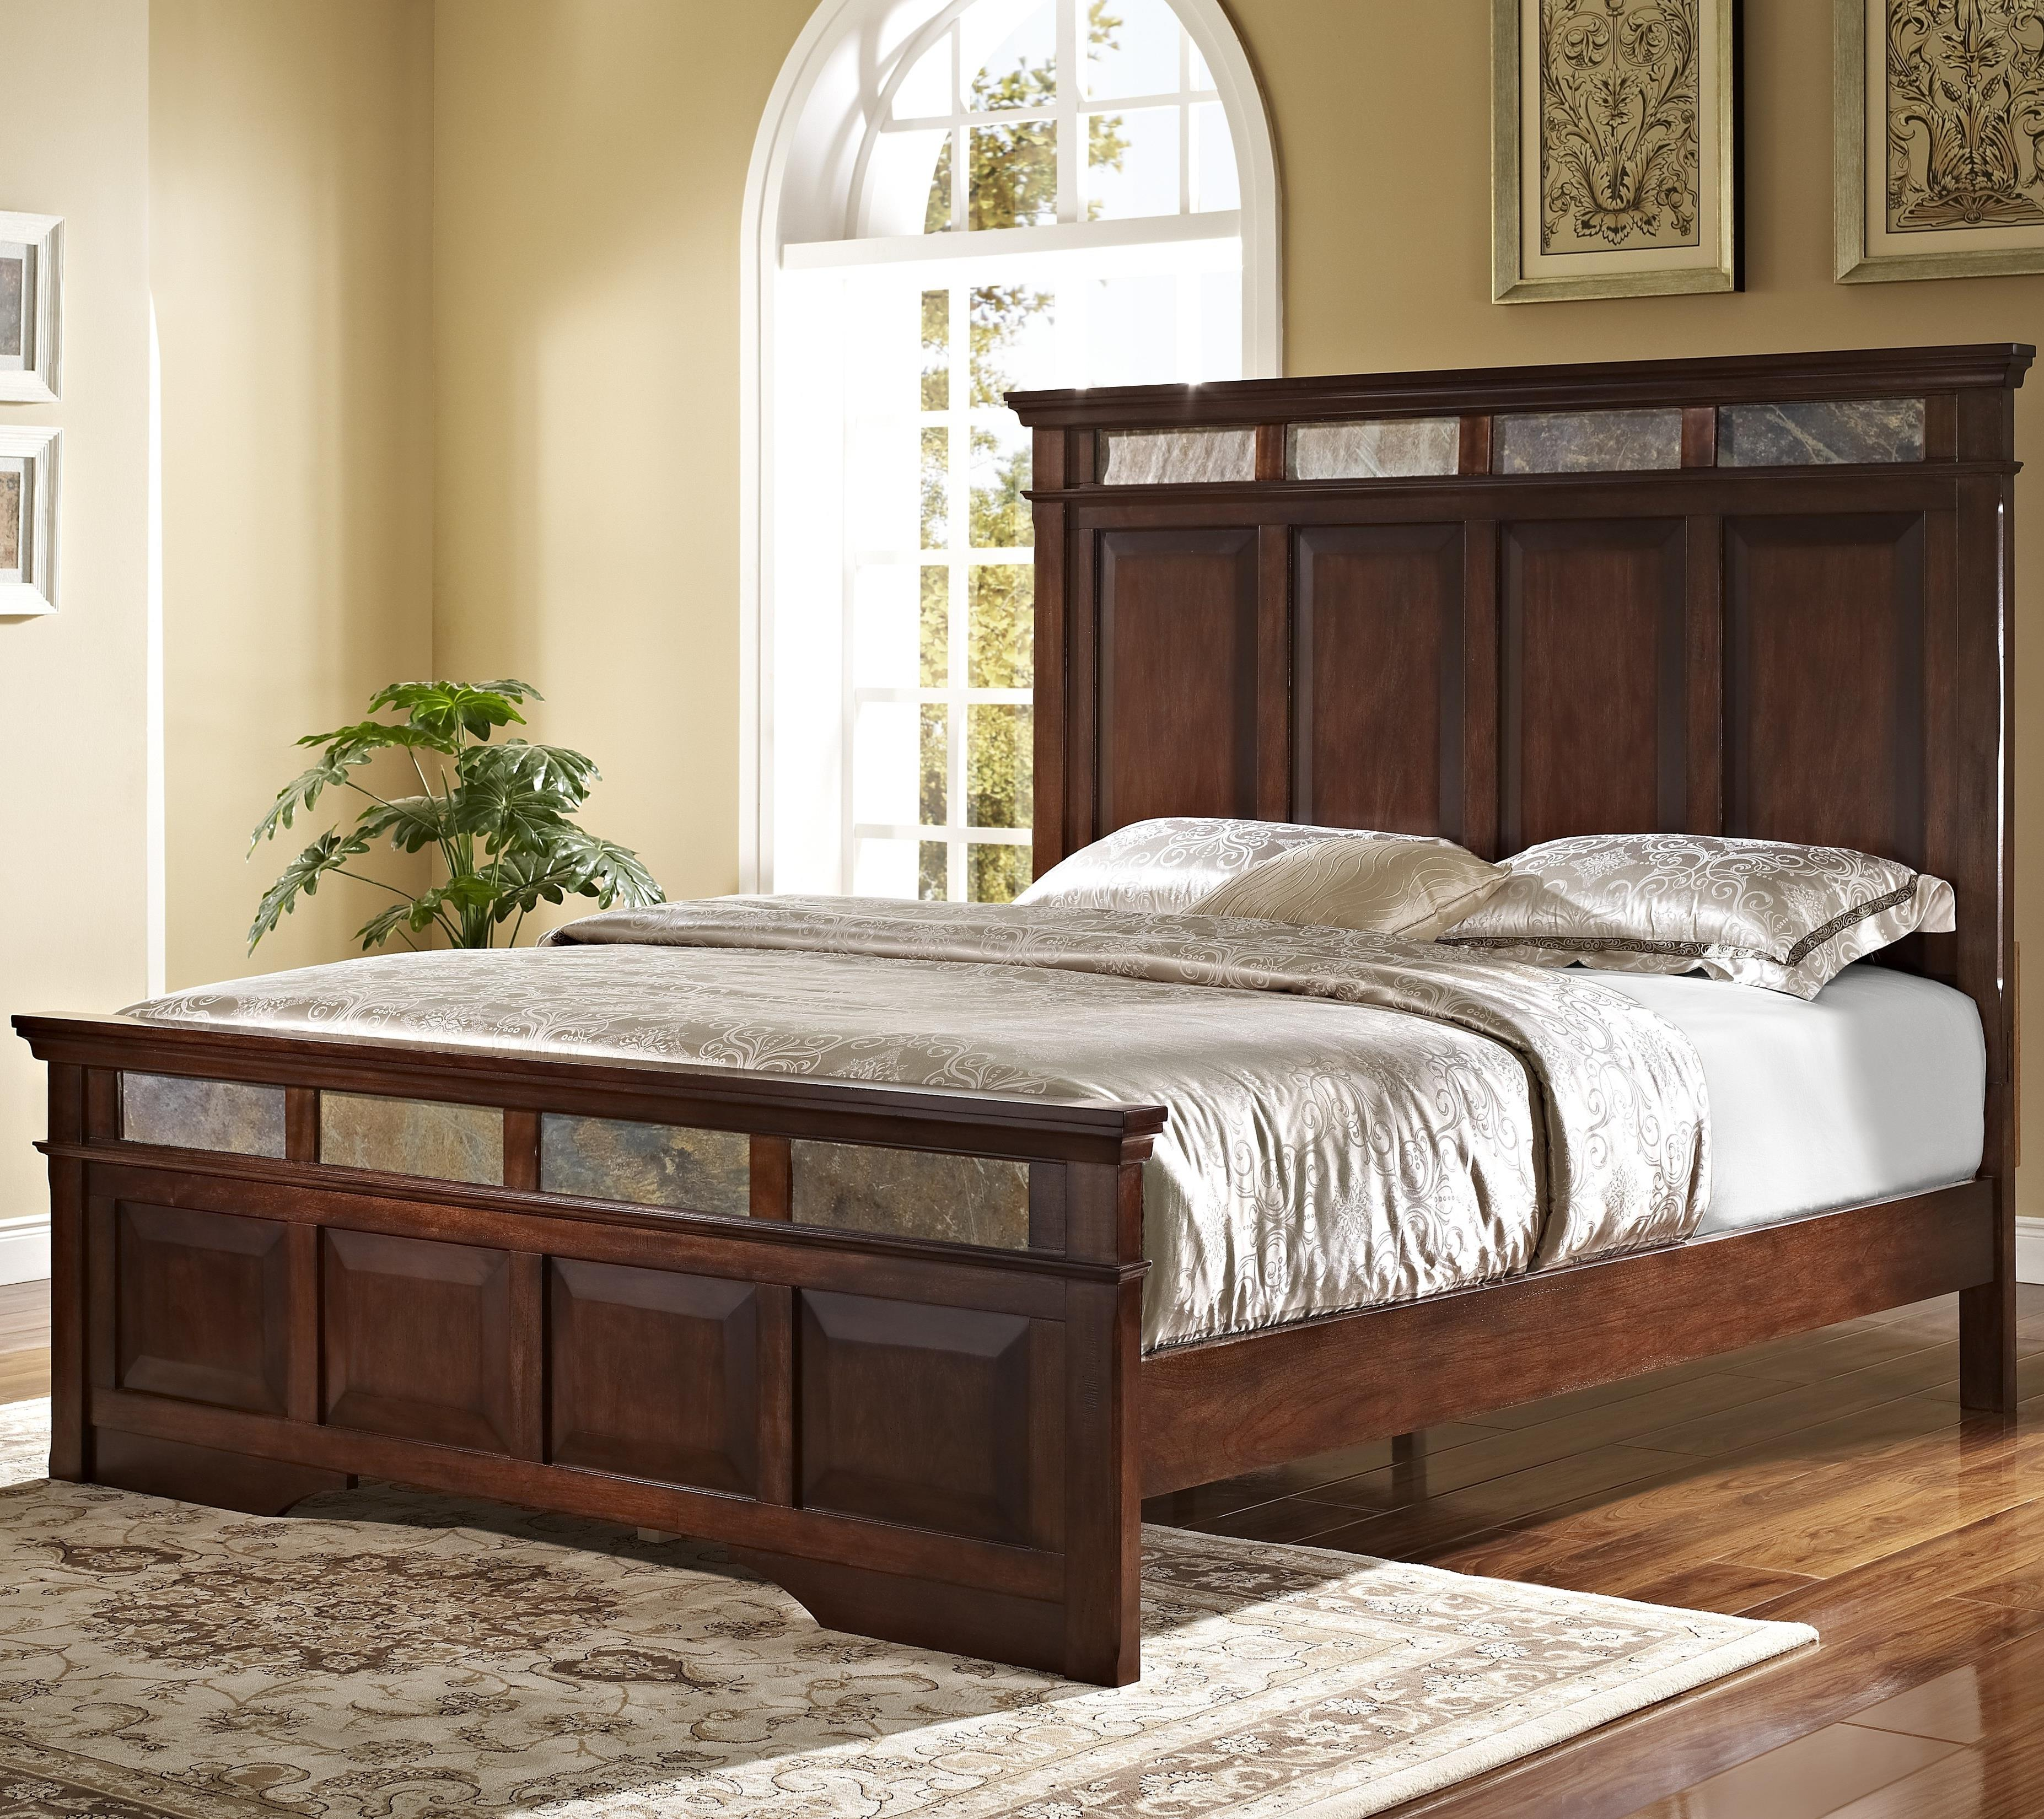 New Classic Madera  Queen Bed - Item Number: 00-455-310+320+330